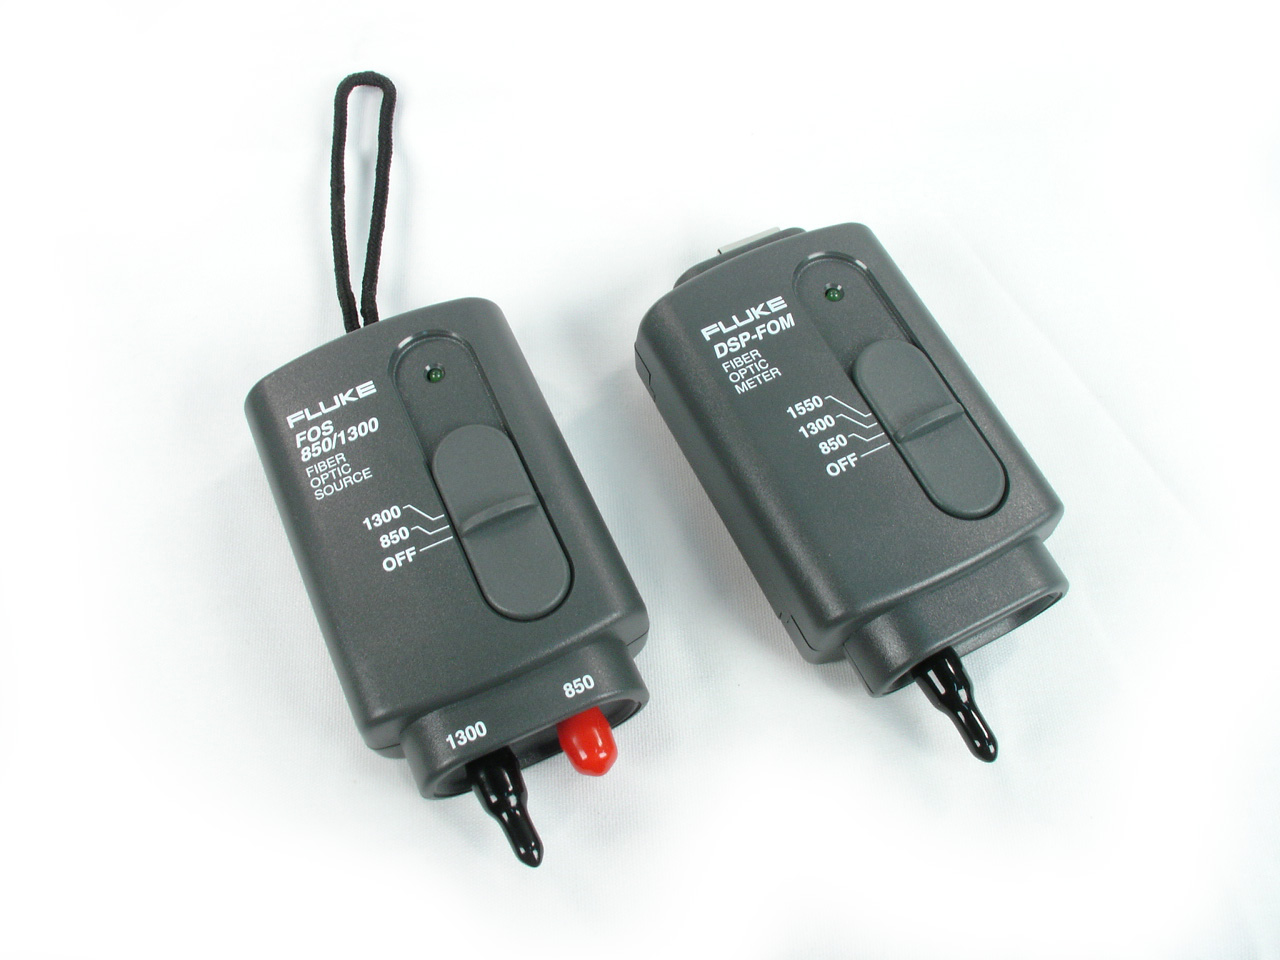 Fluke DSP-FTK for sale